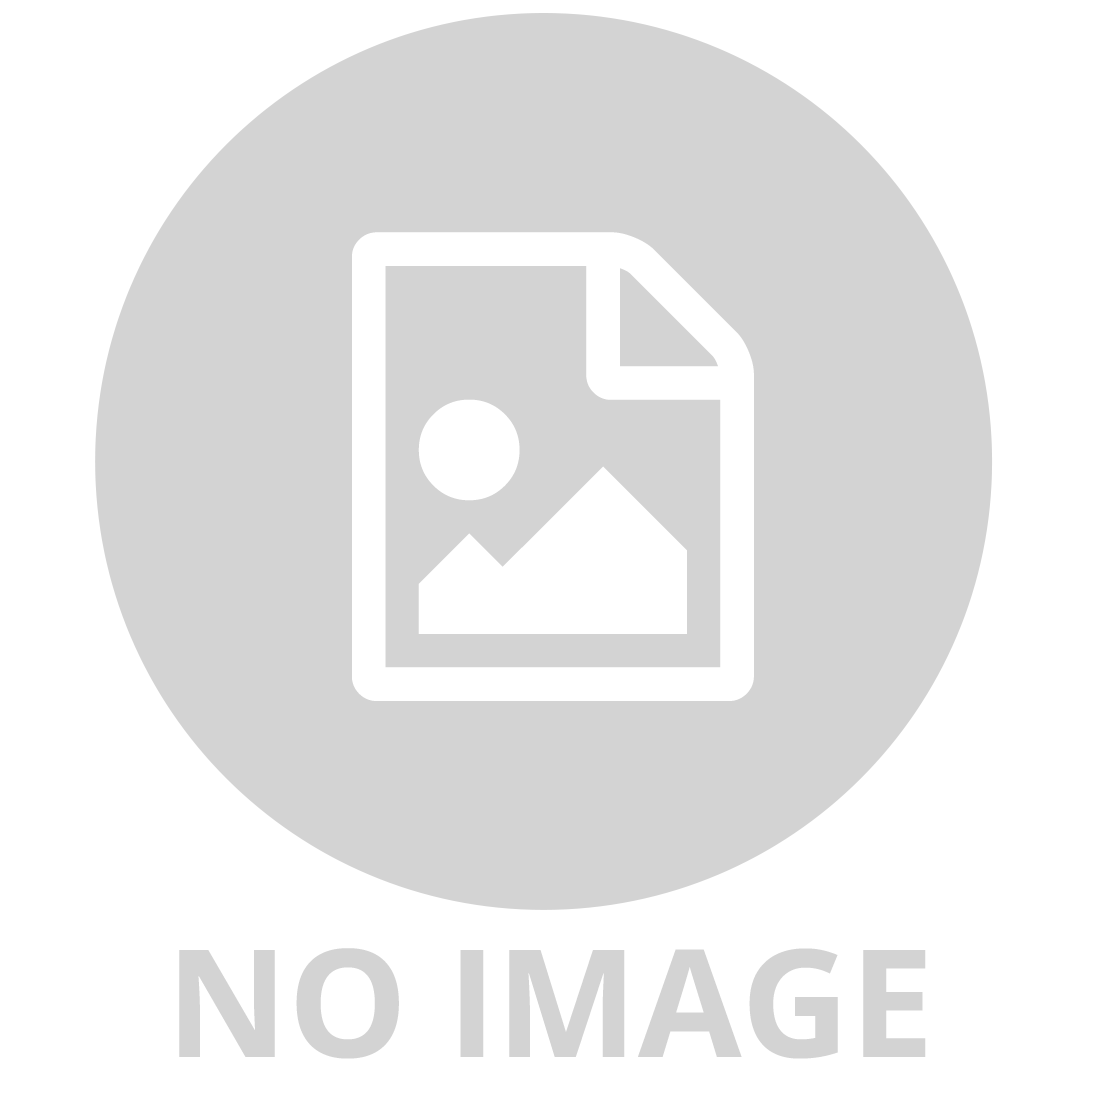 TRANSFORMERS WAR FOR CYBERTRON - LASERBEAK AND RAVAGE